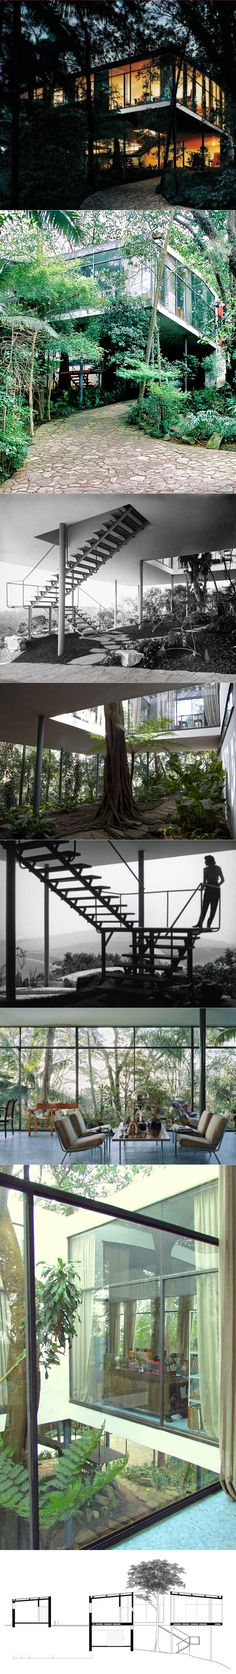 paradise found : architecture : the glass house : lina bo bardi : brazil 1950 Beautiful Architecture, Interior Architecture, Exterior Design, Interior And Exterior, Pavillion, Glass House, Future House, Bungalow, House Design